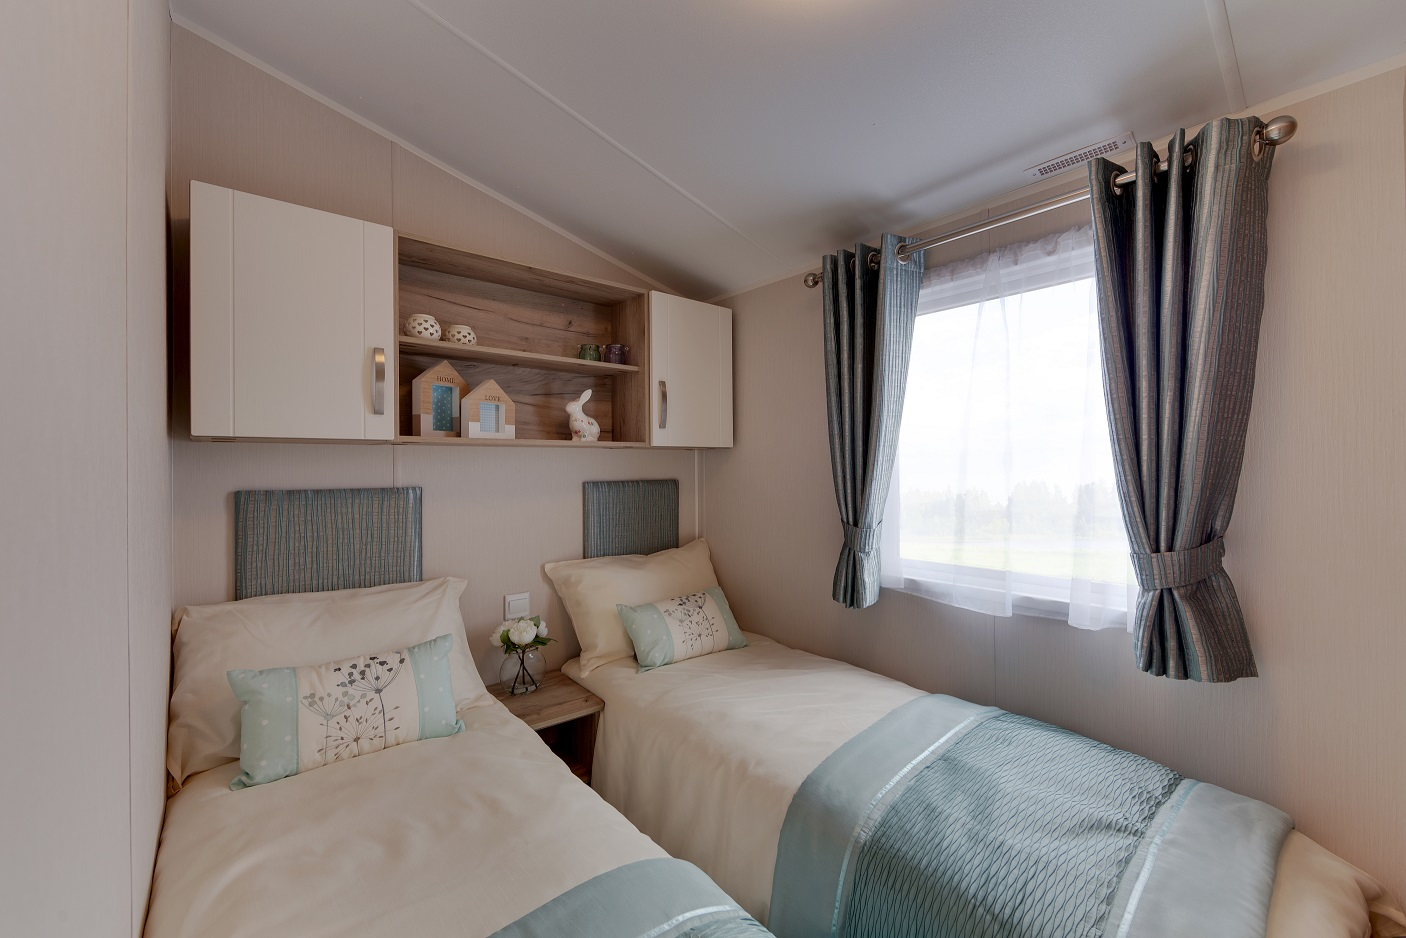 Willerby Skye - 3 Bedrooms: New Static Caravans and Holiday Homes for Sale, Clifton, Morpeth Large Image 5